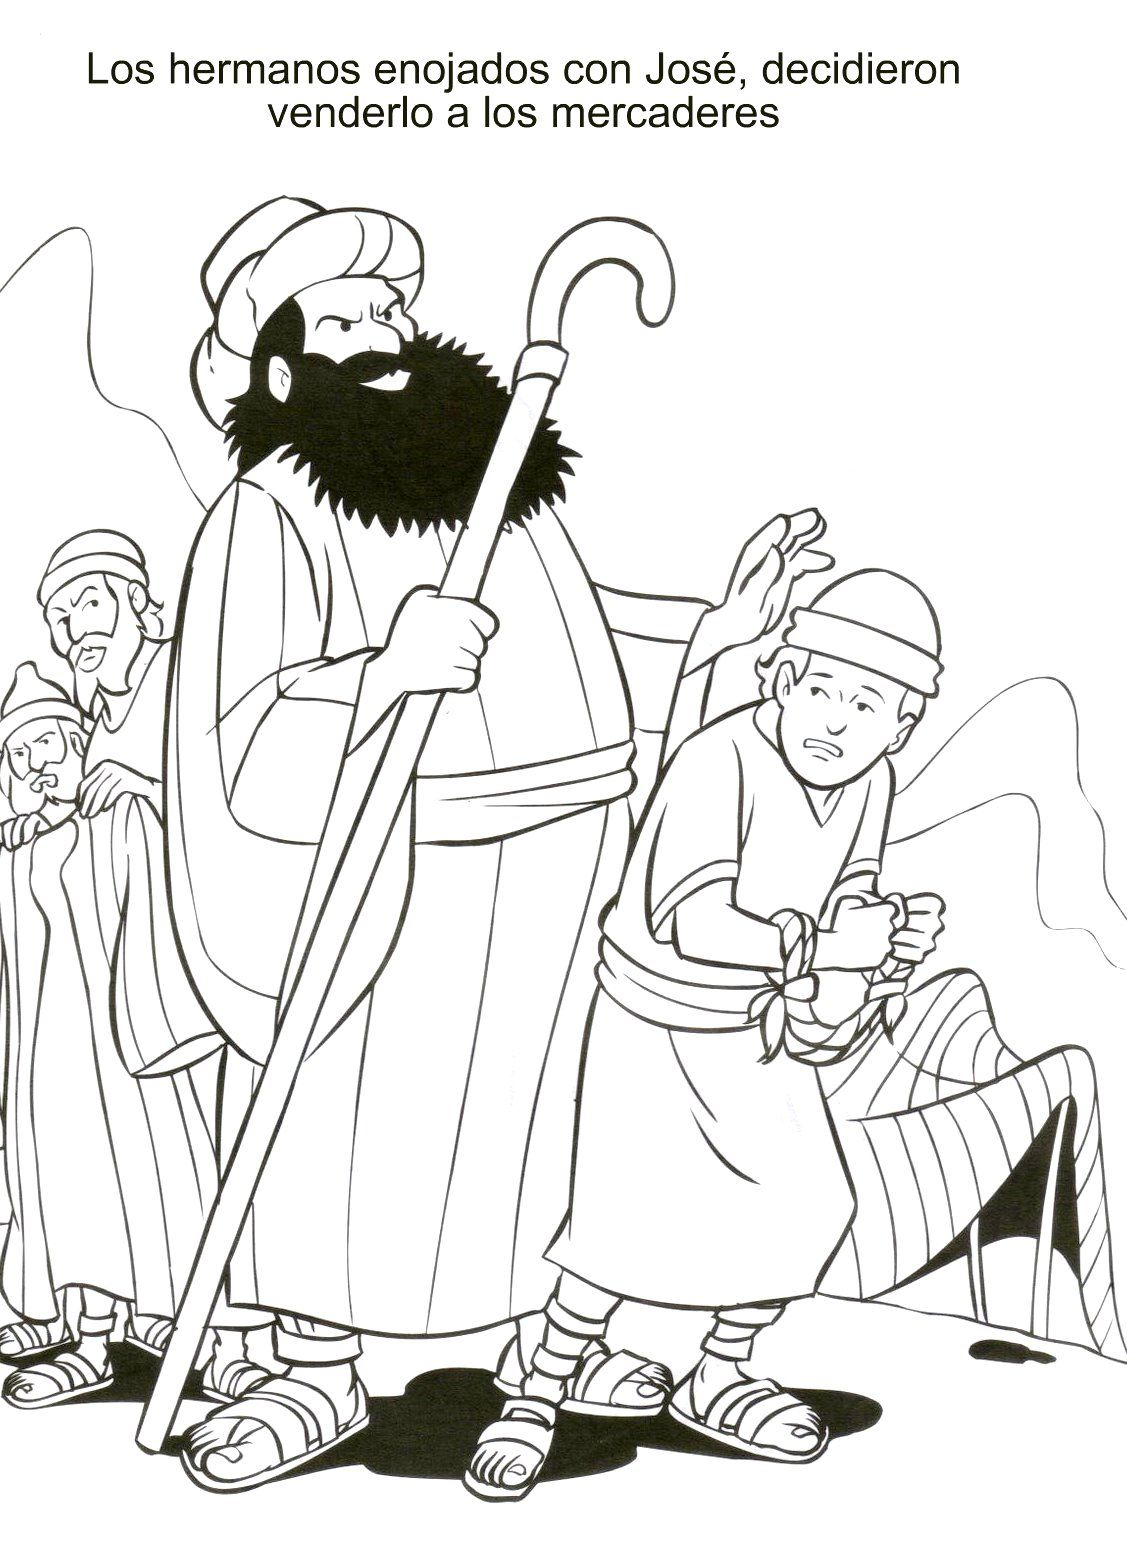 genesis 39 coloring pages - photo#20